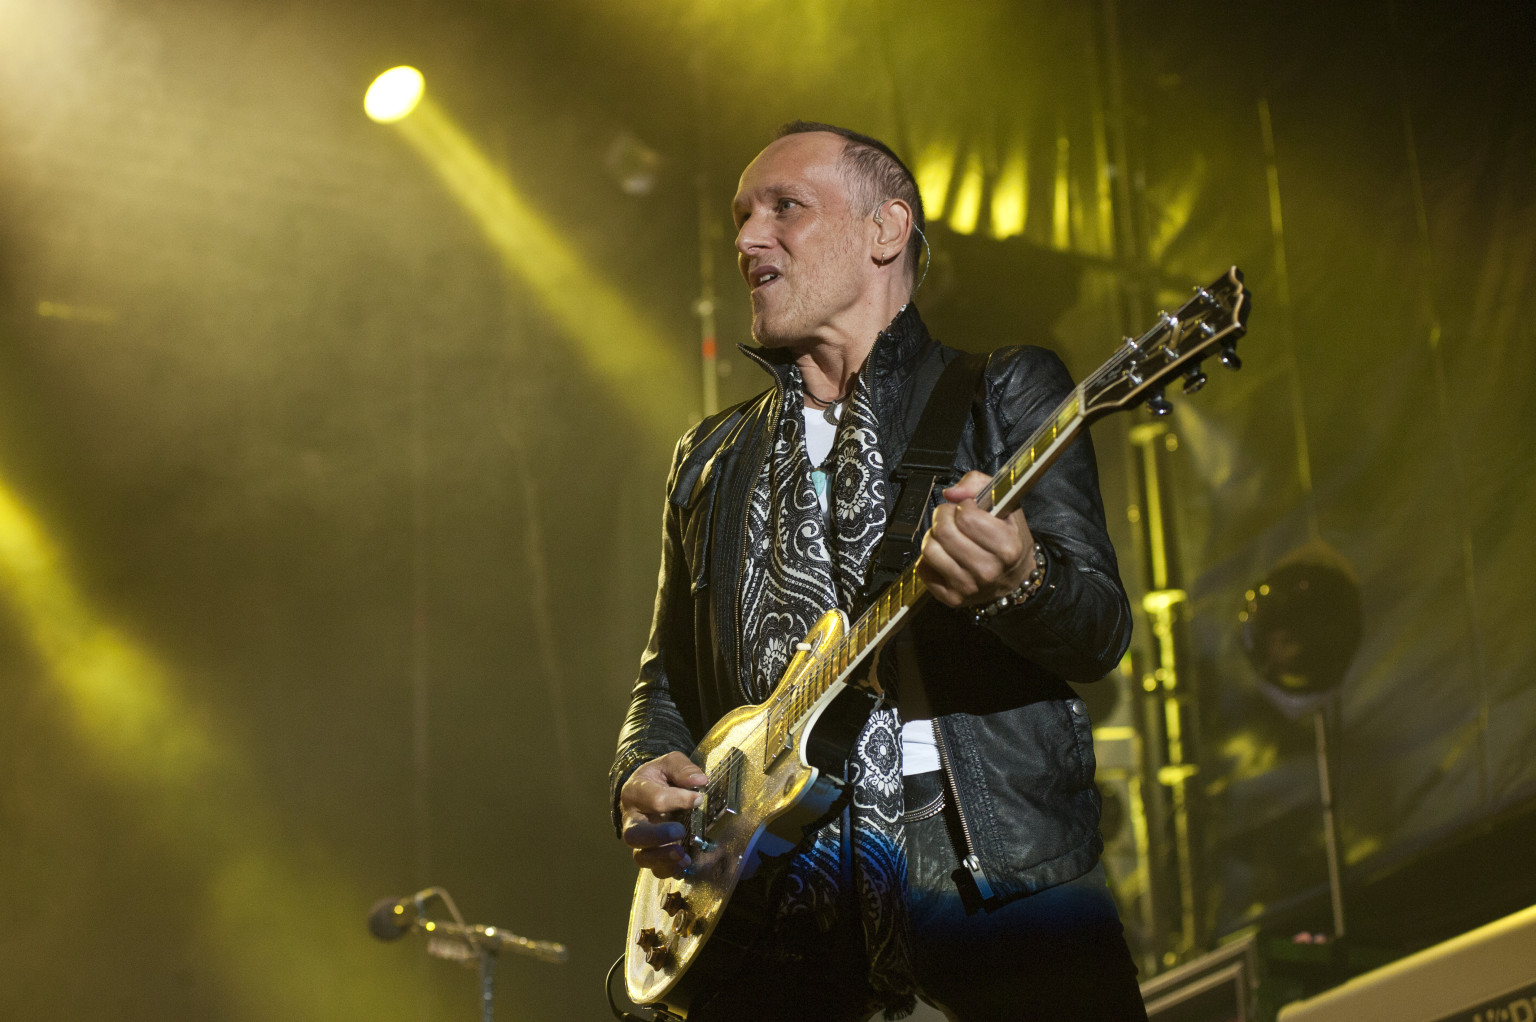 Def Leppard Guitarist Vivian Campbell Talks Touring With Cancer (INTERVIEW)